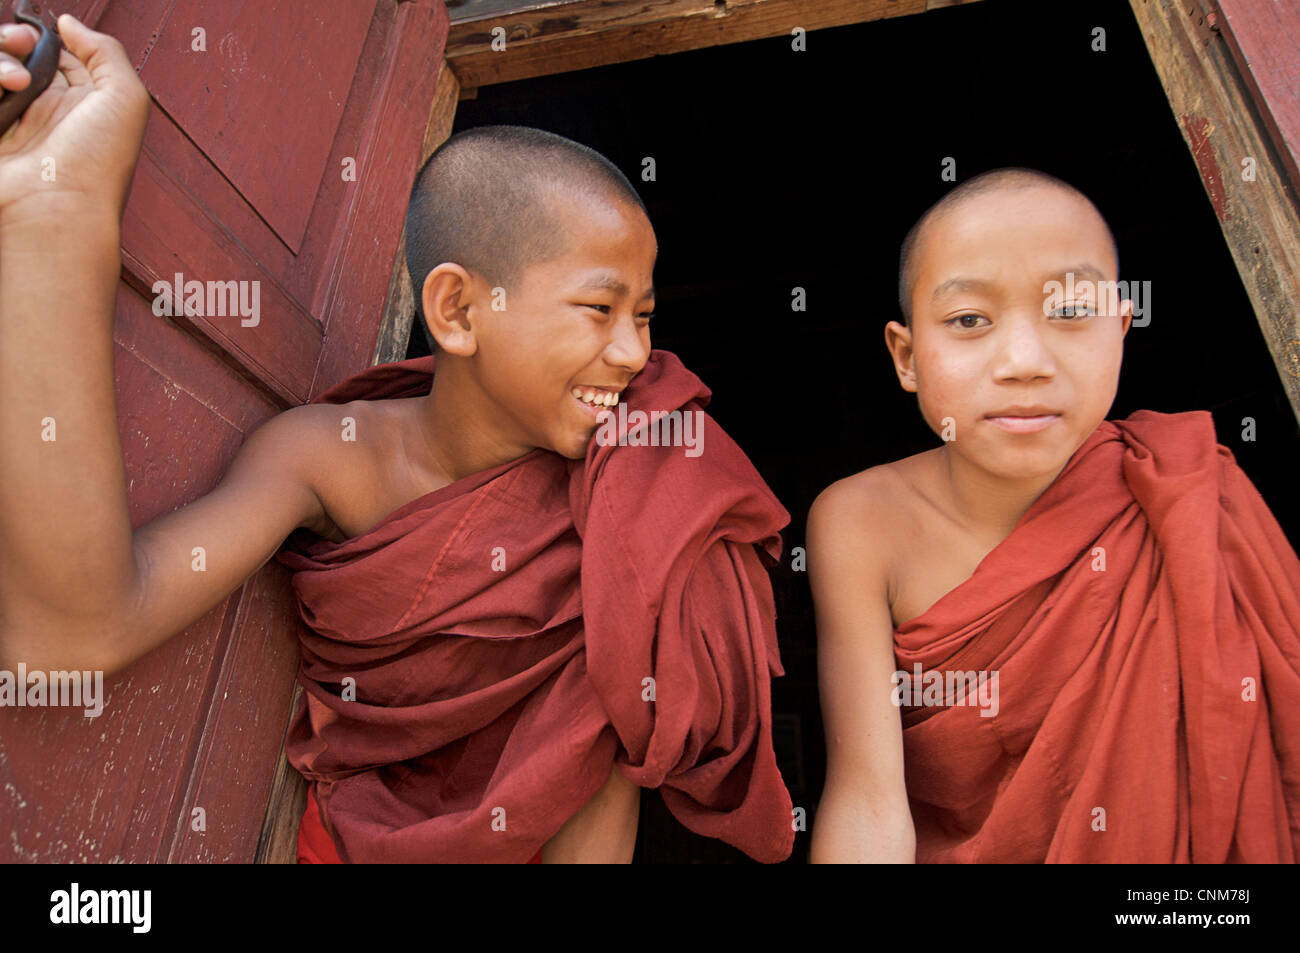 Buddhist monks at window of quarters, Kalaw Monastery, Burma - Stock Image